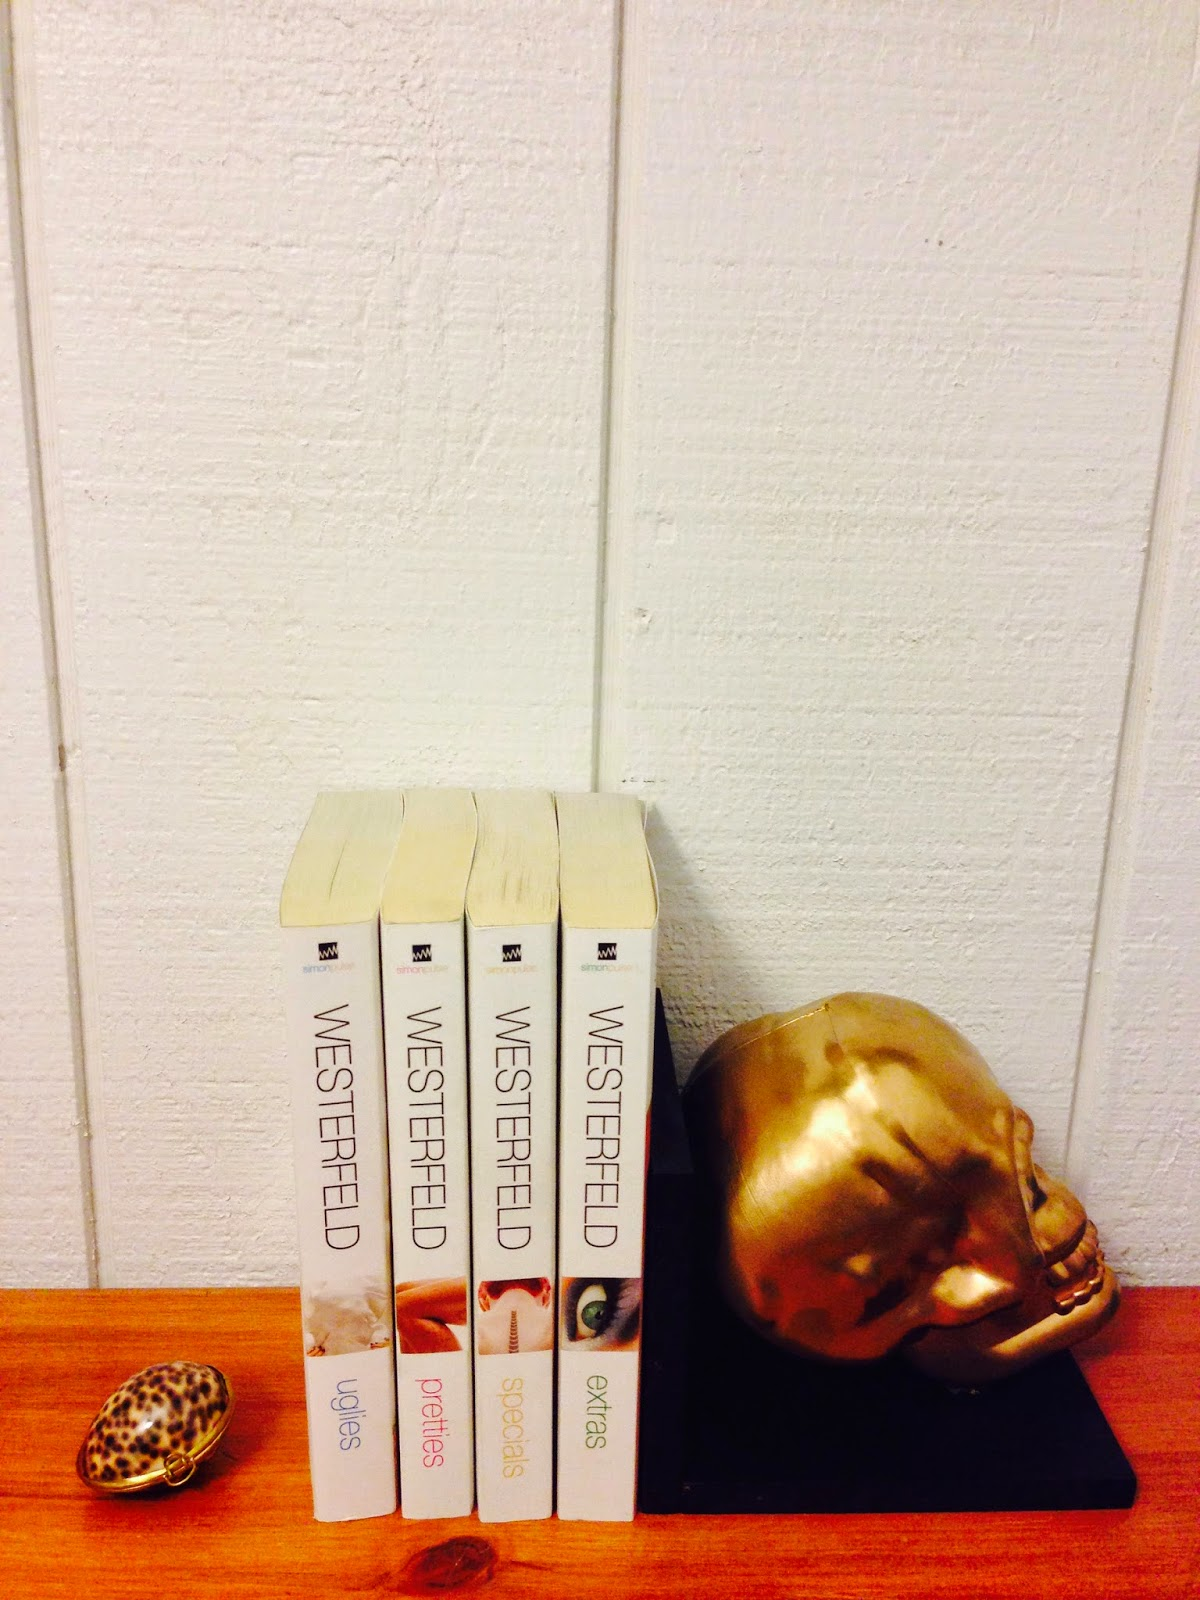 Diy skull bookend www.savvysydney.com #skull #gold #halloween #fun #diy #painting #bookend #craft #present #gift